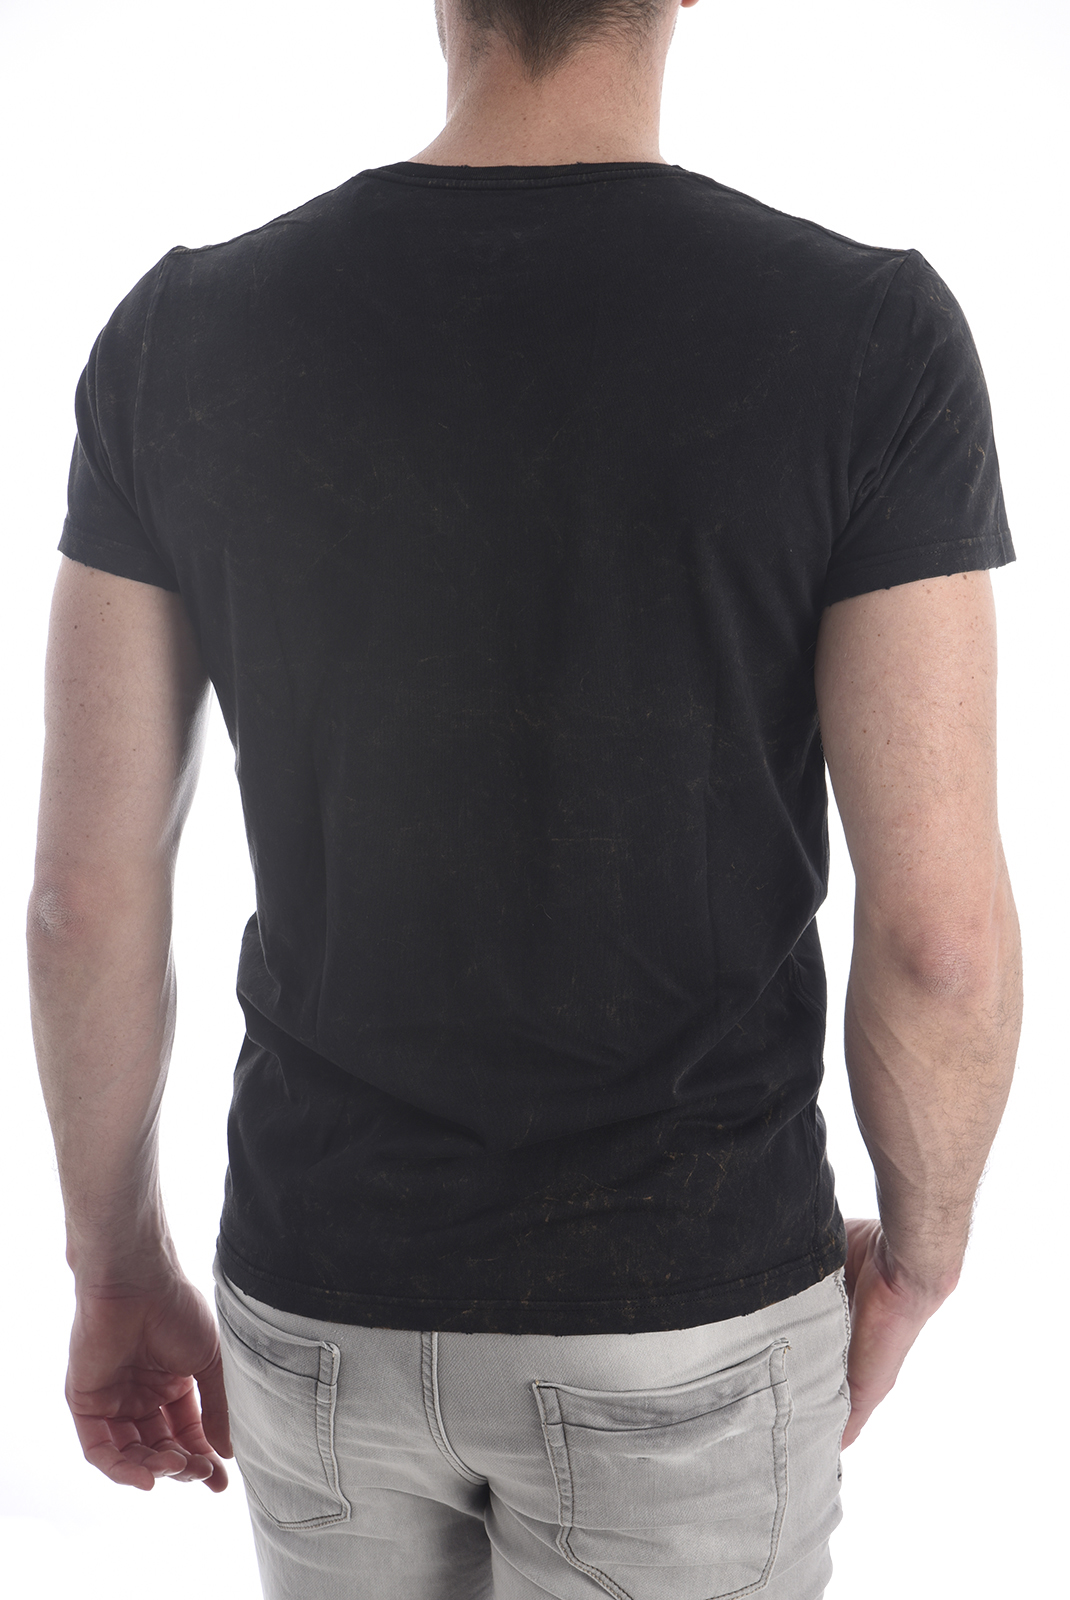 Tee-shirts  Pepe jeans PM502001 RIDER 986 REMOTE